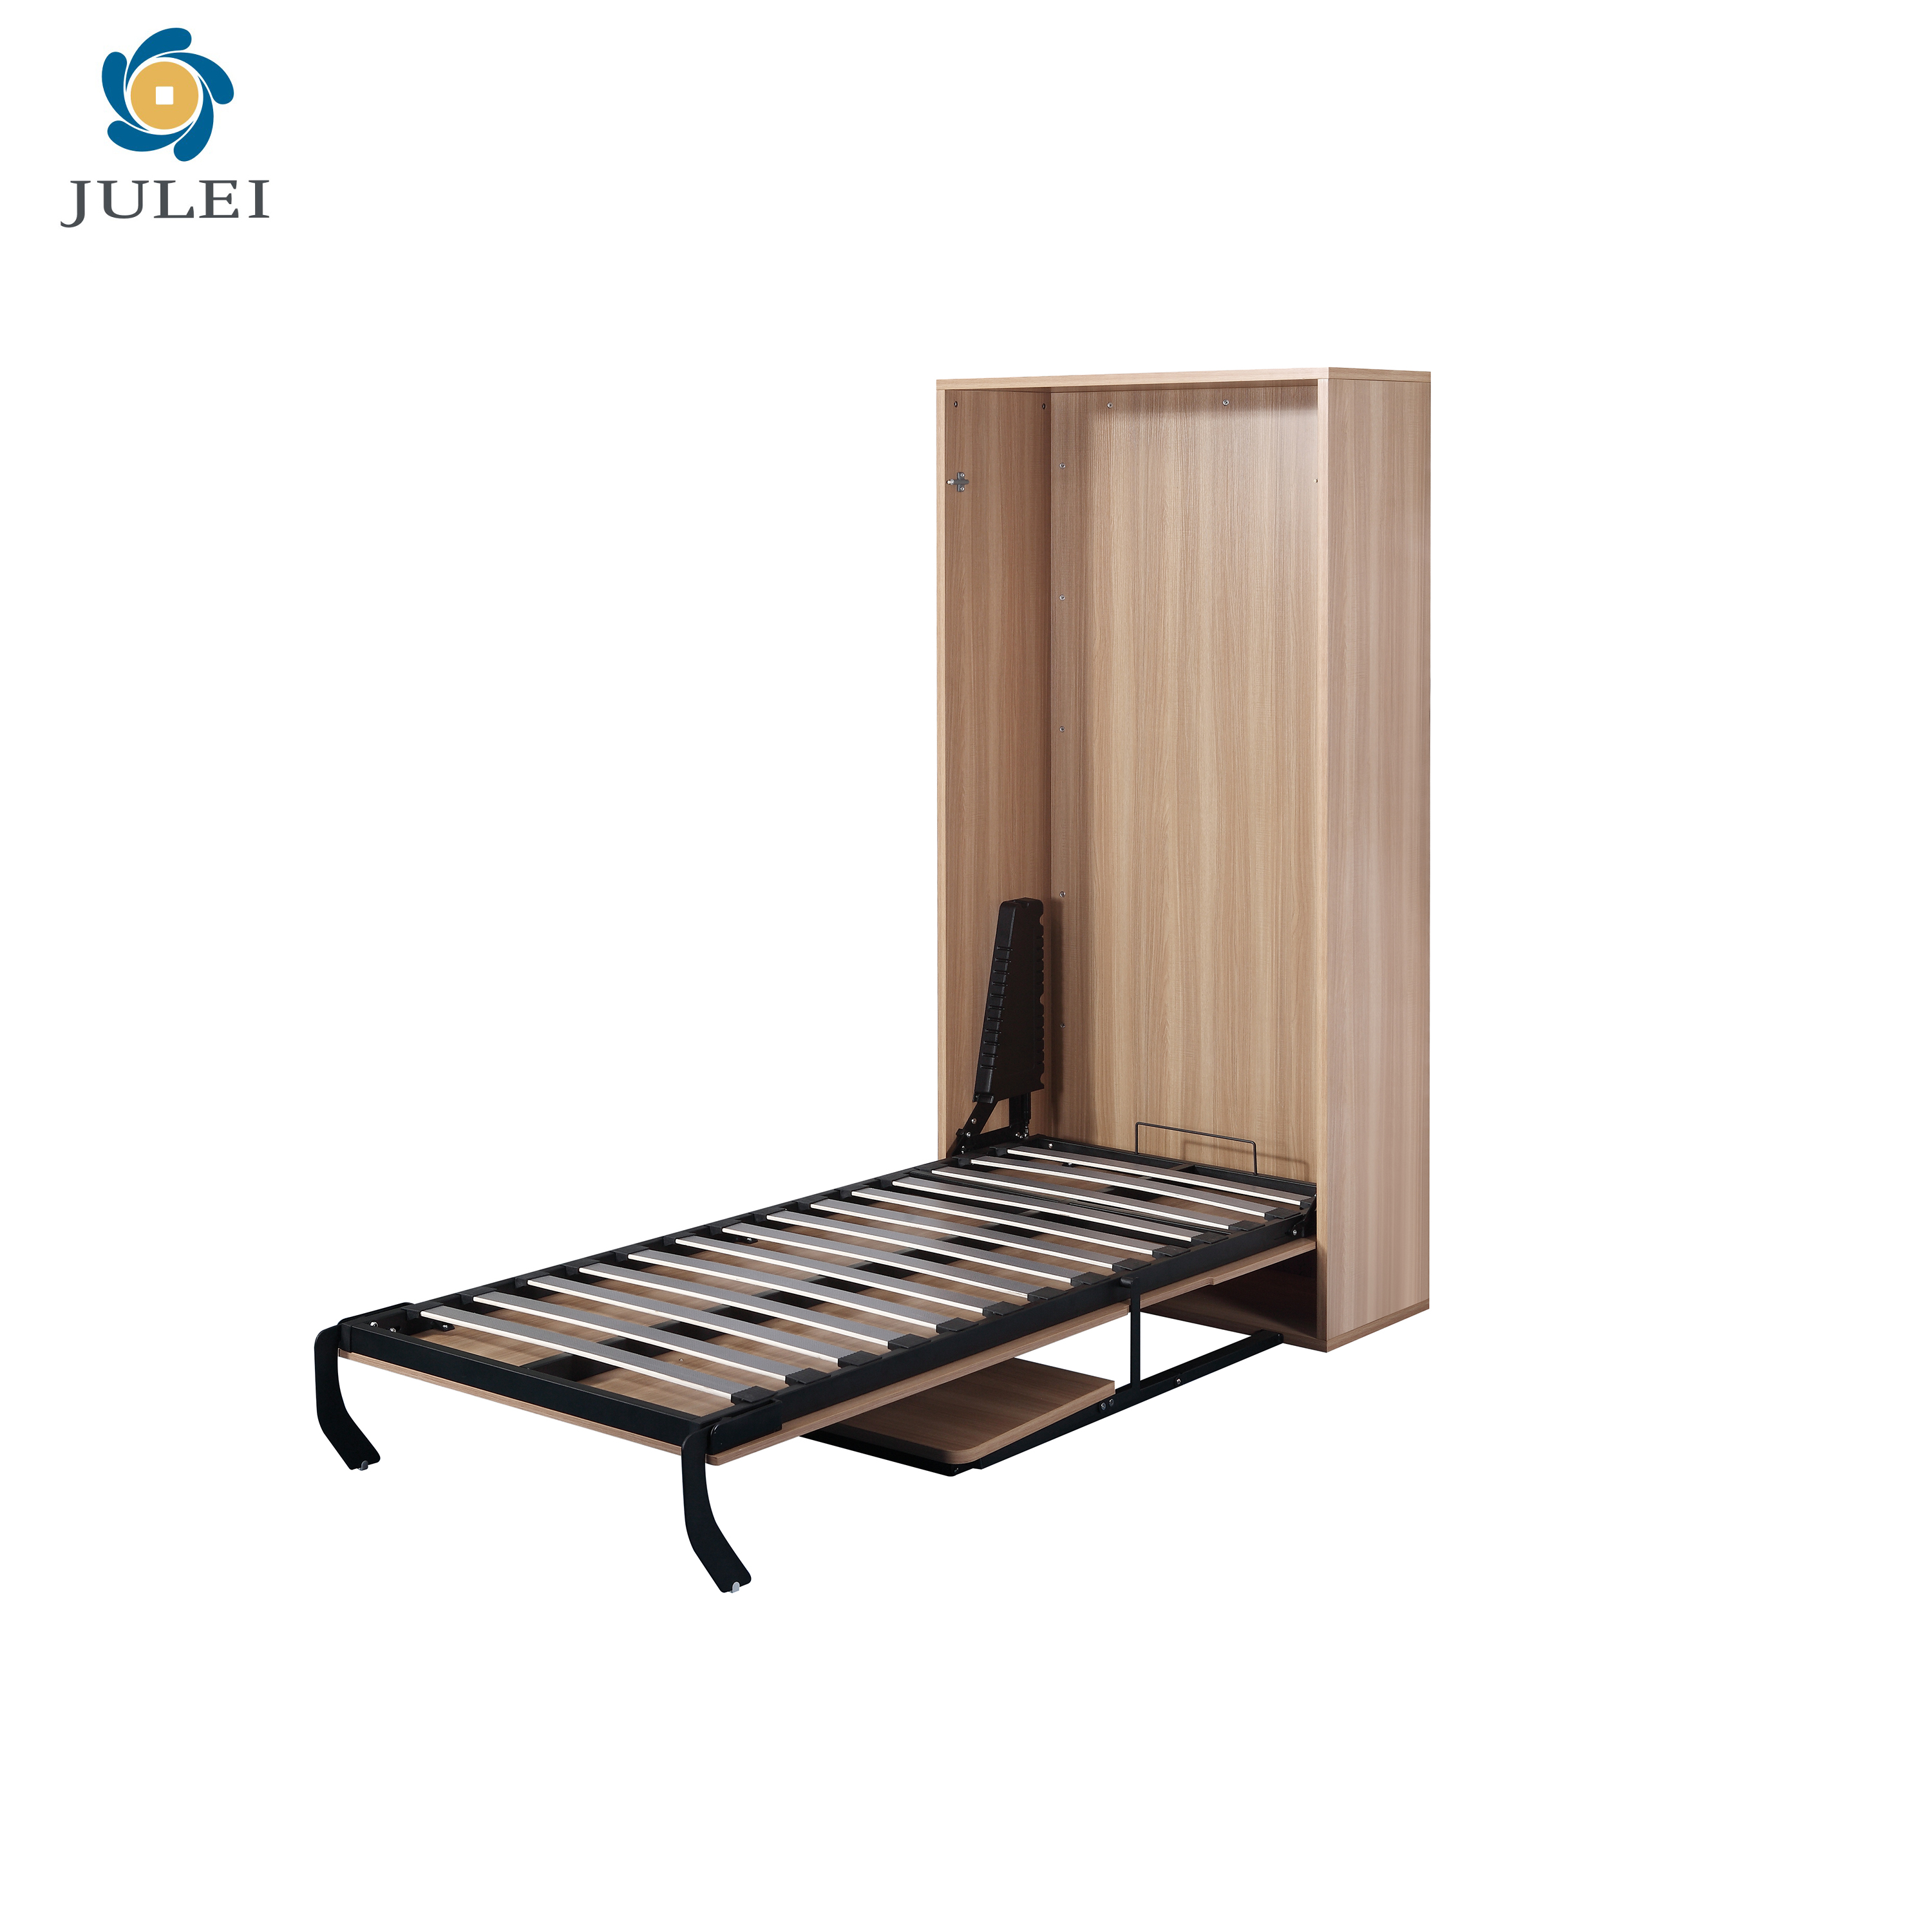 Smart Furniture KD Wall bed Murphy Bed Hardware Kit Suitable for Apartment